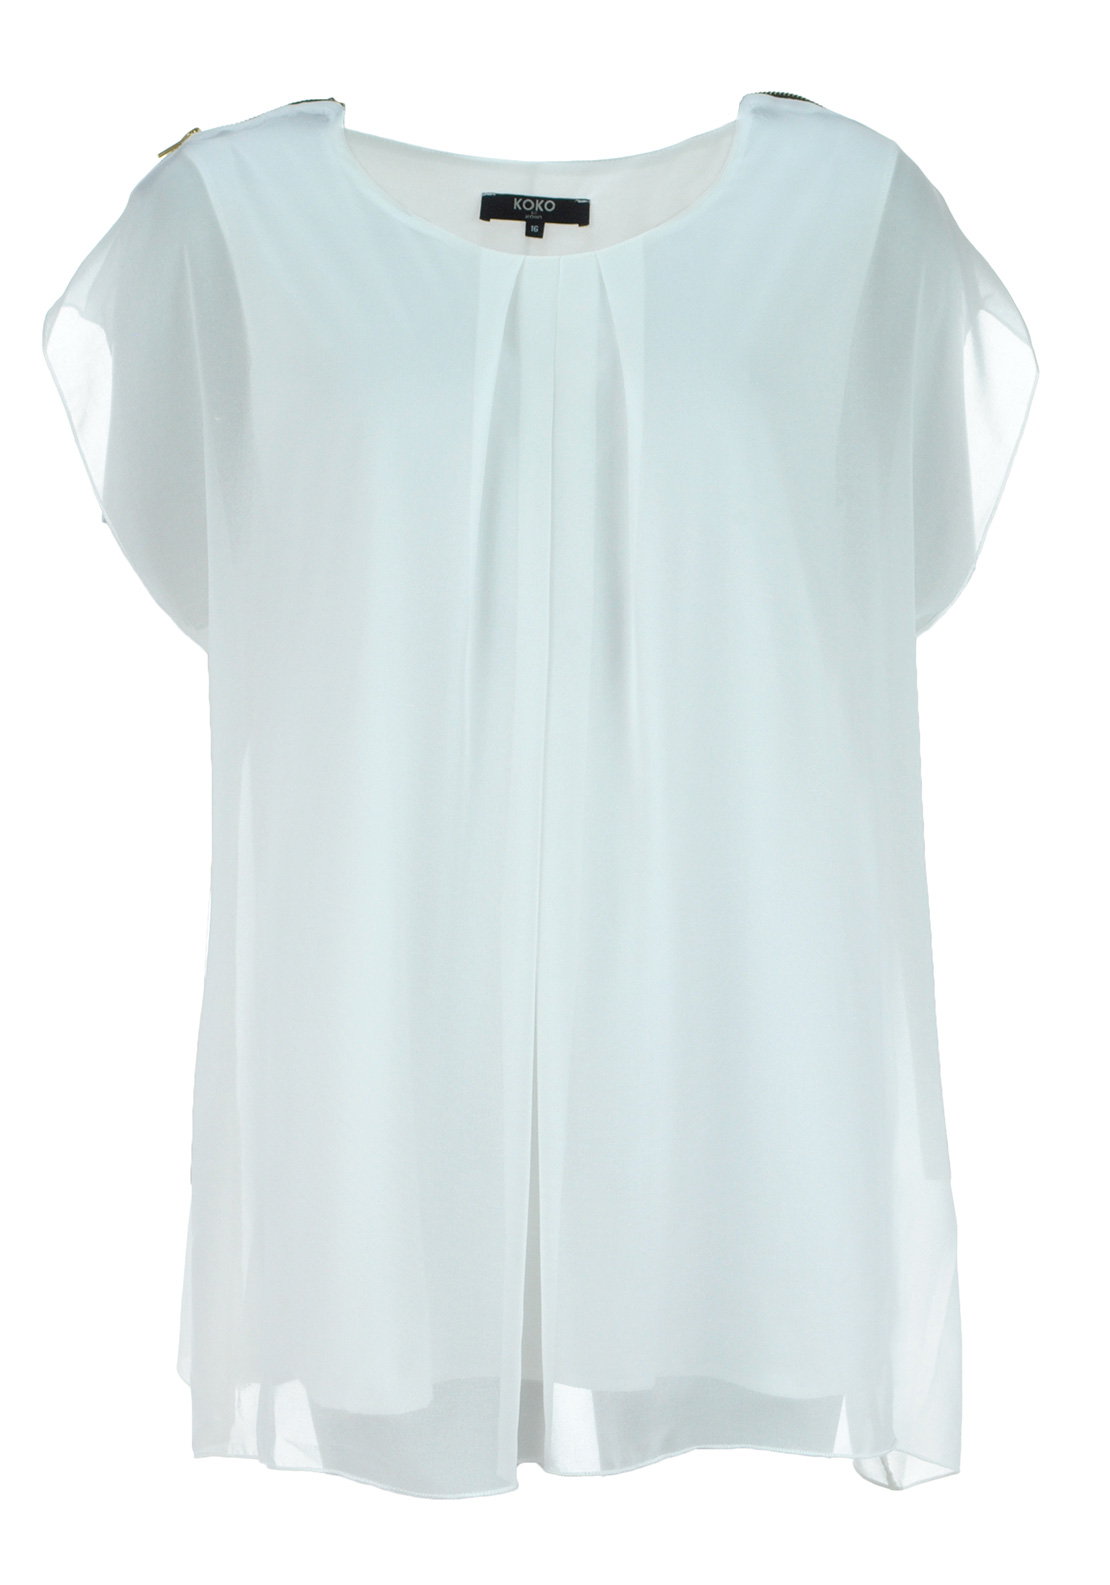 Lovedrobe Zip Shoulder Chiffon Tunic Top, Ivory